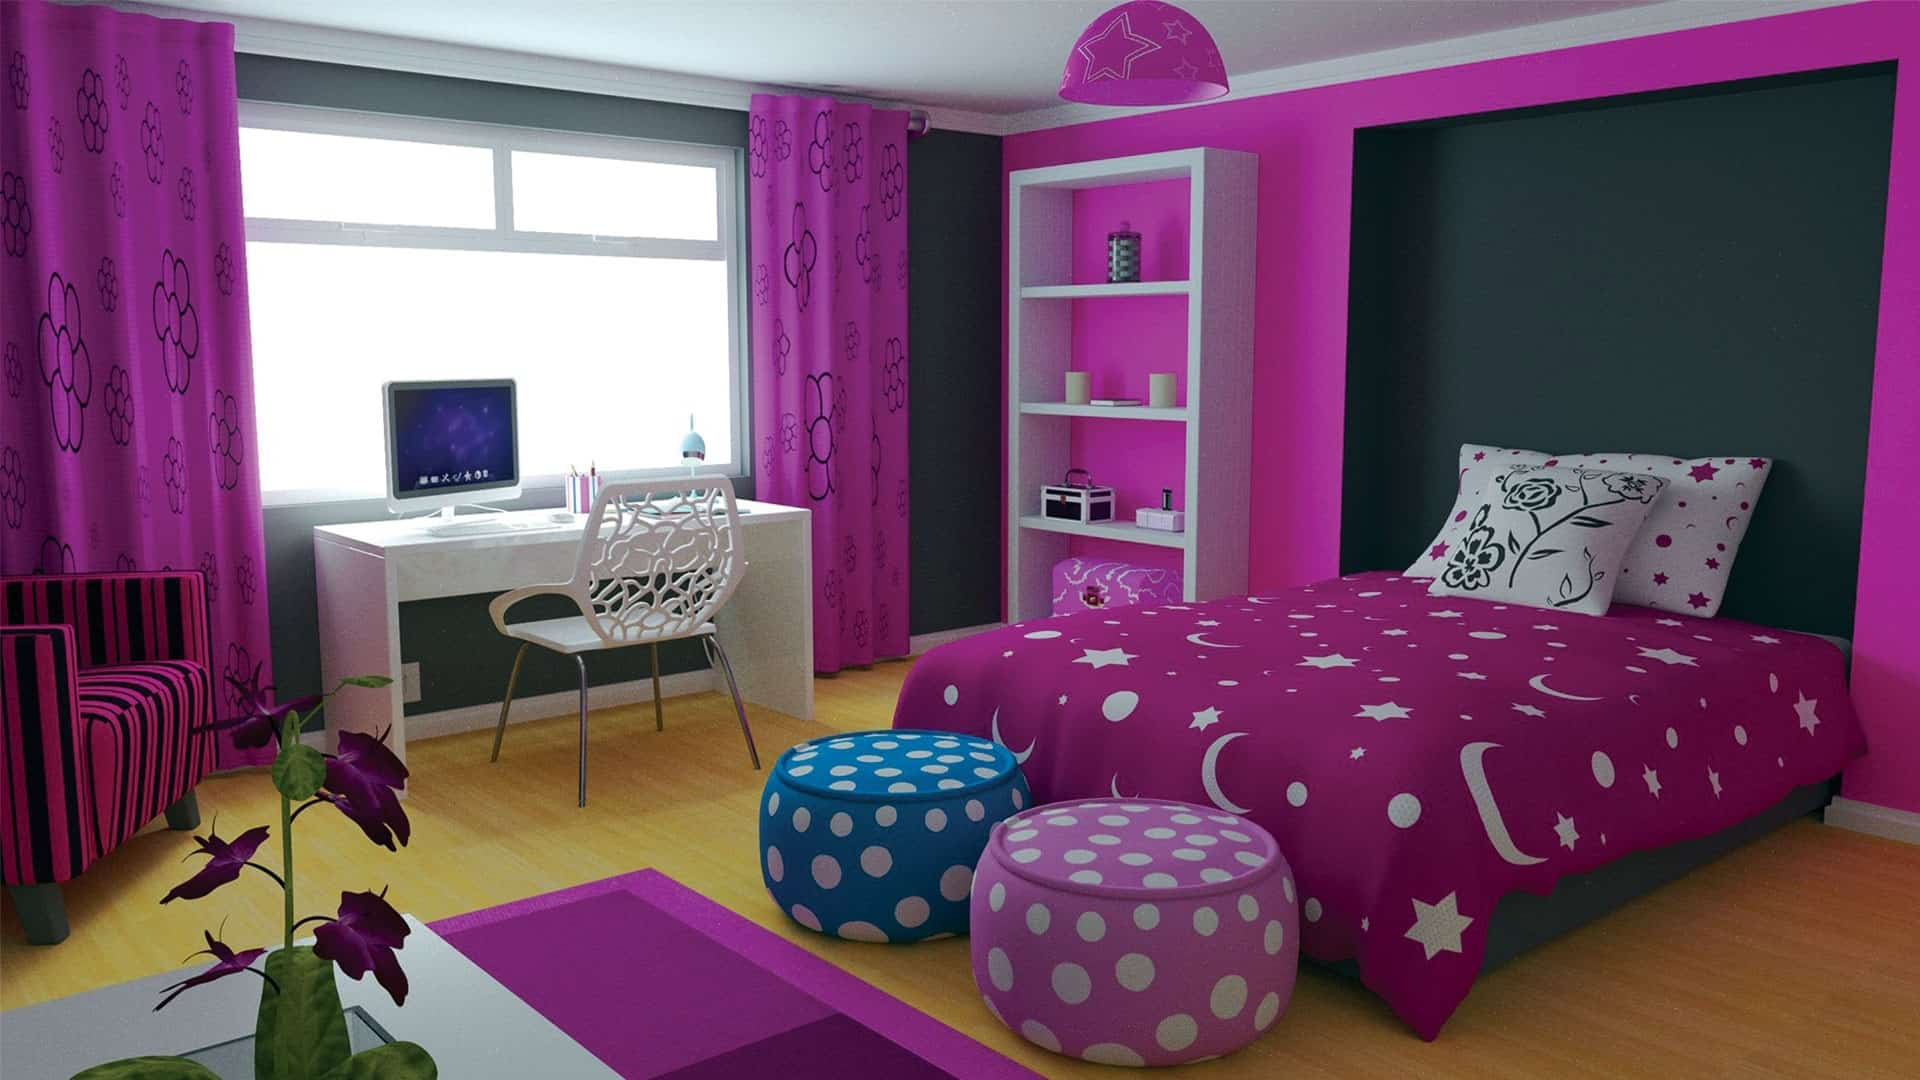 Home decor trends 2017 purple teen room for Girls bedroom decor ideas